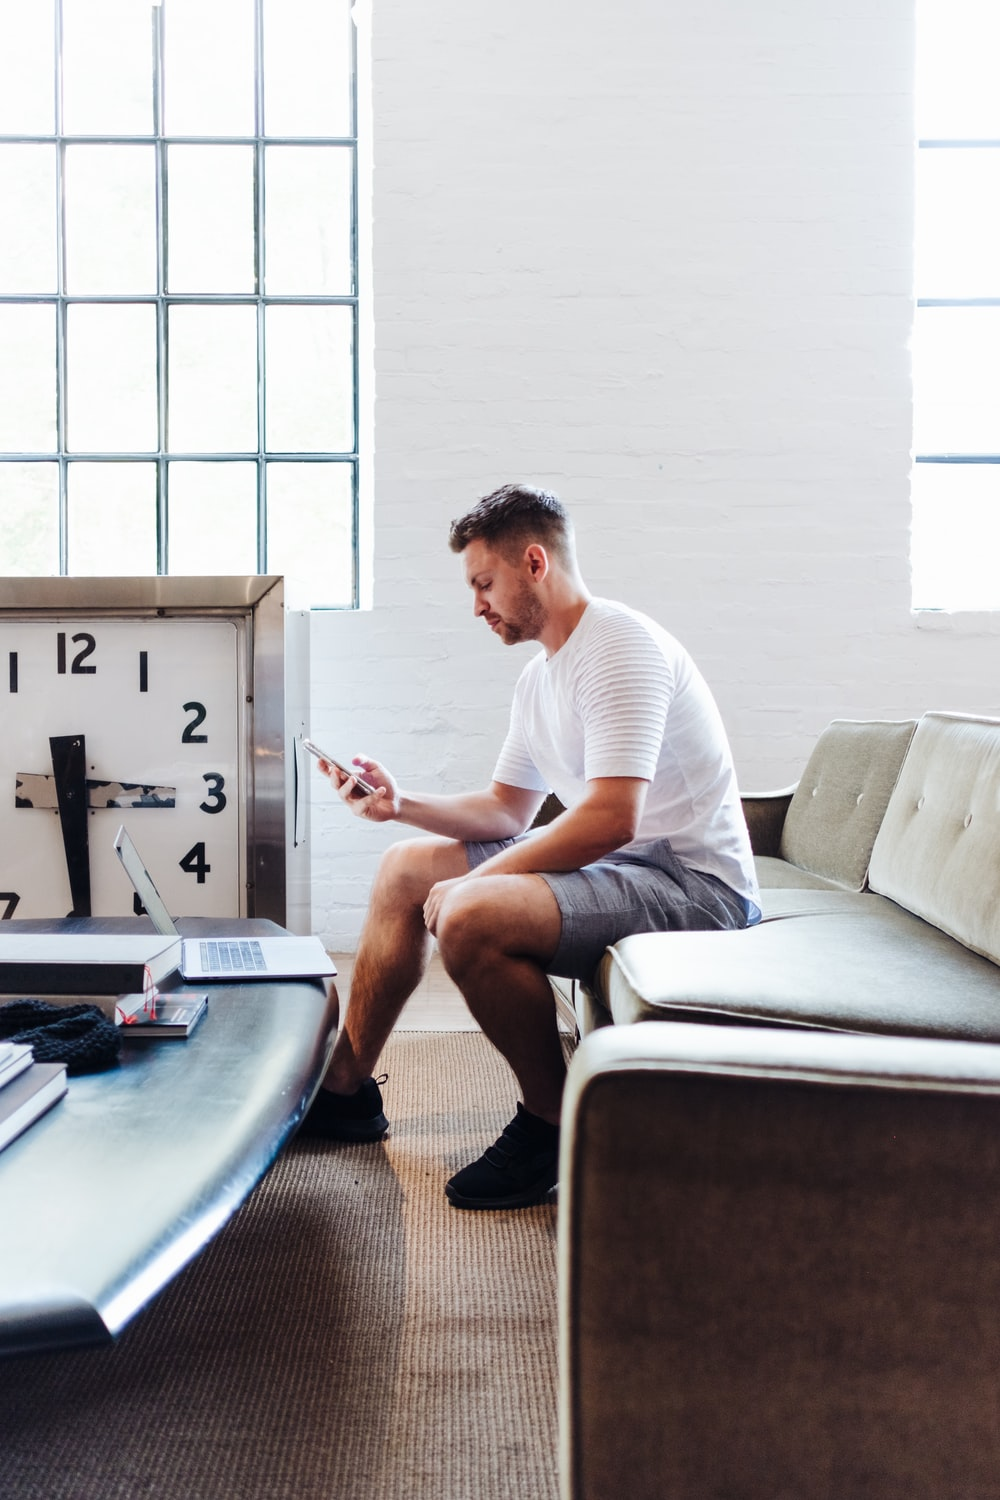 sitting man wearing white t-shirt using smartphone